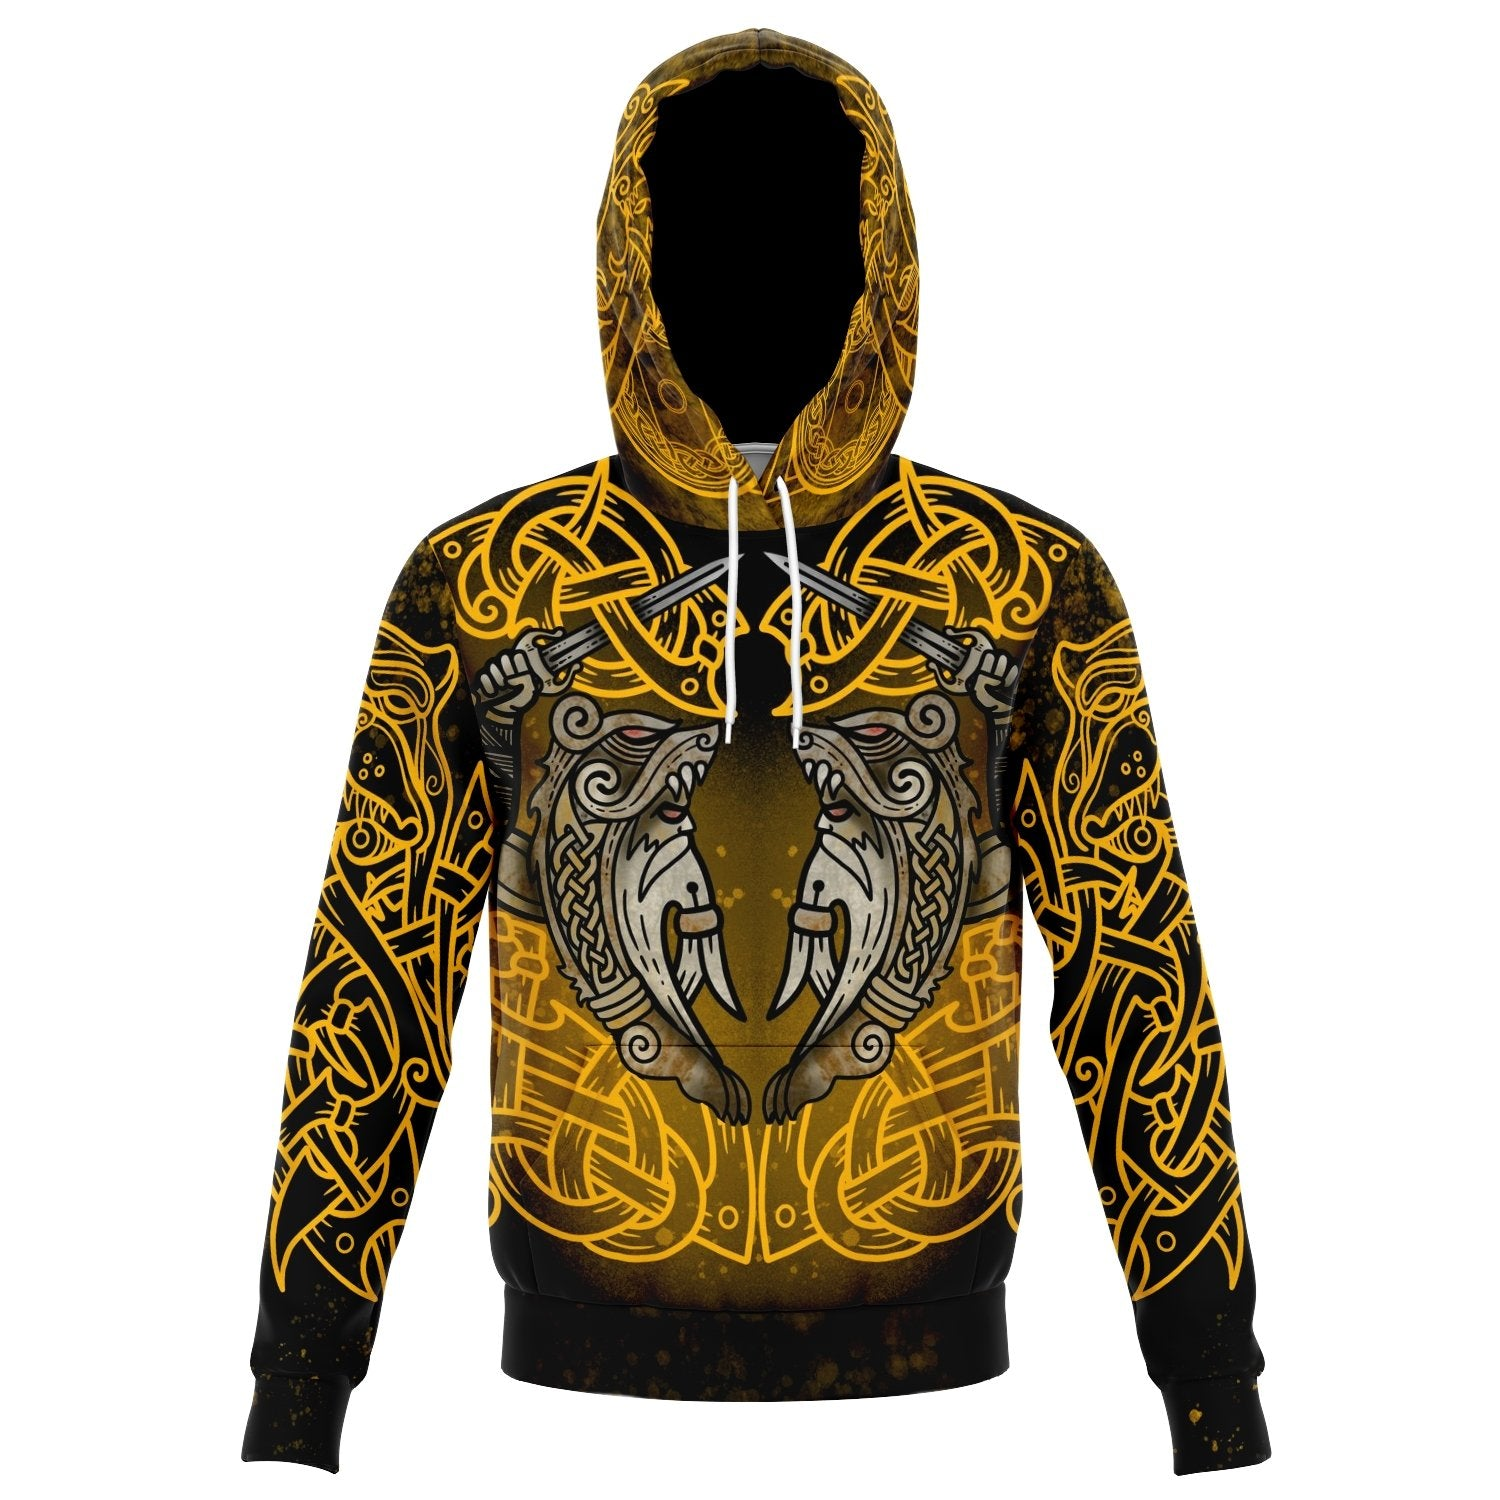 Berserker Warrior Cotton Hoodie - GOLD